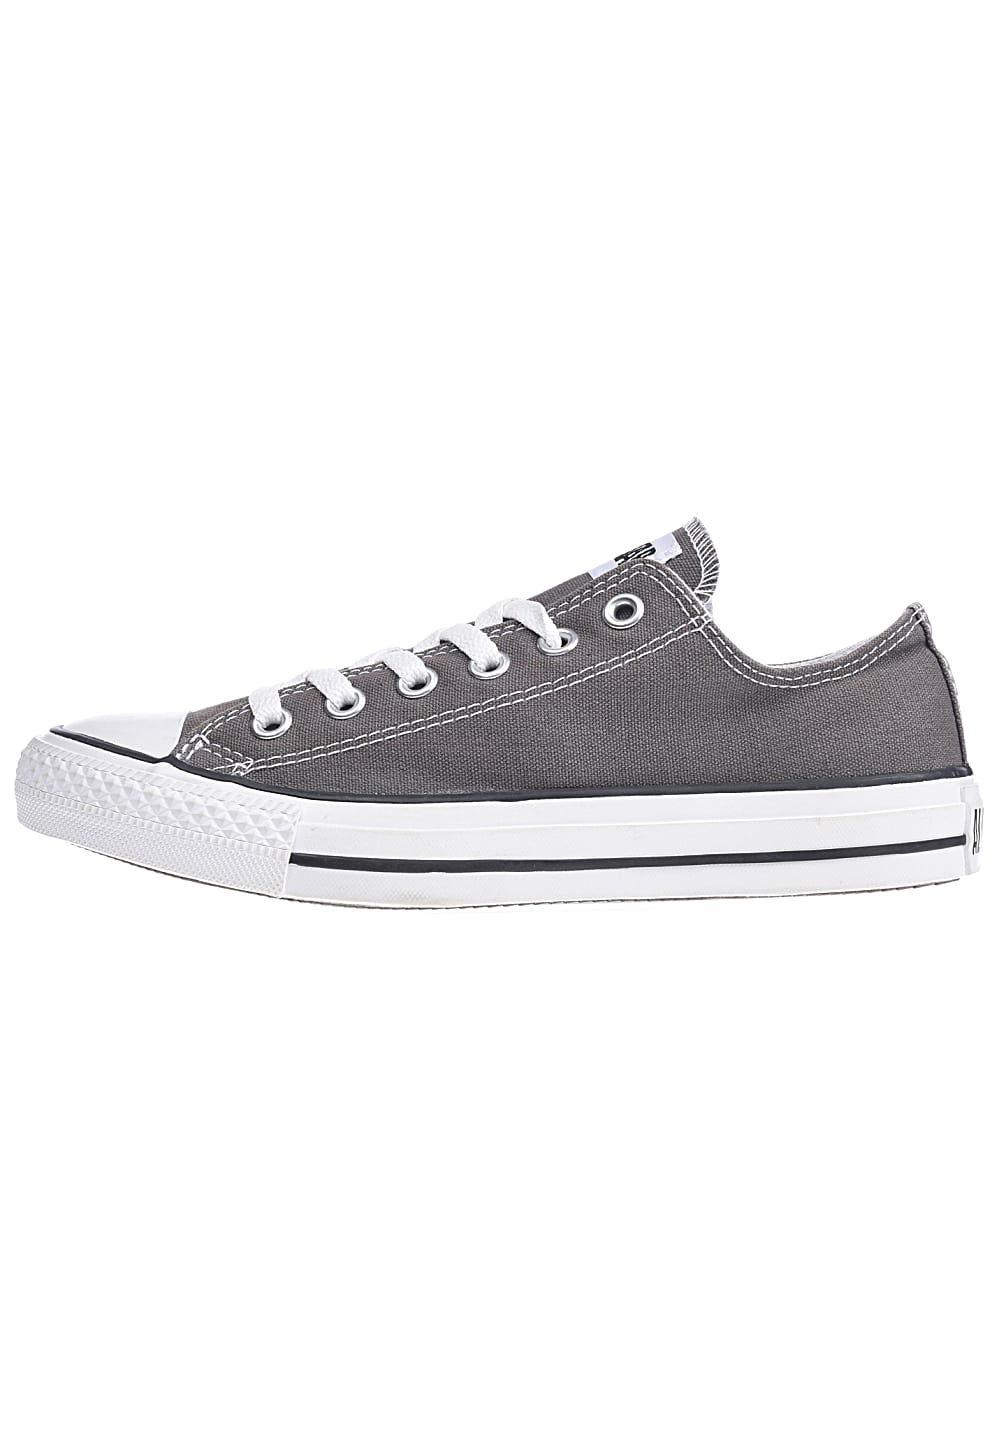 Converse Chuck Taylor All Star Seasonal Ox Sneaker Grau